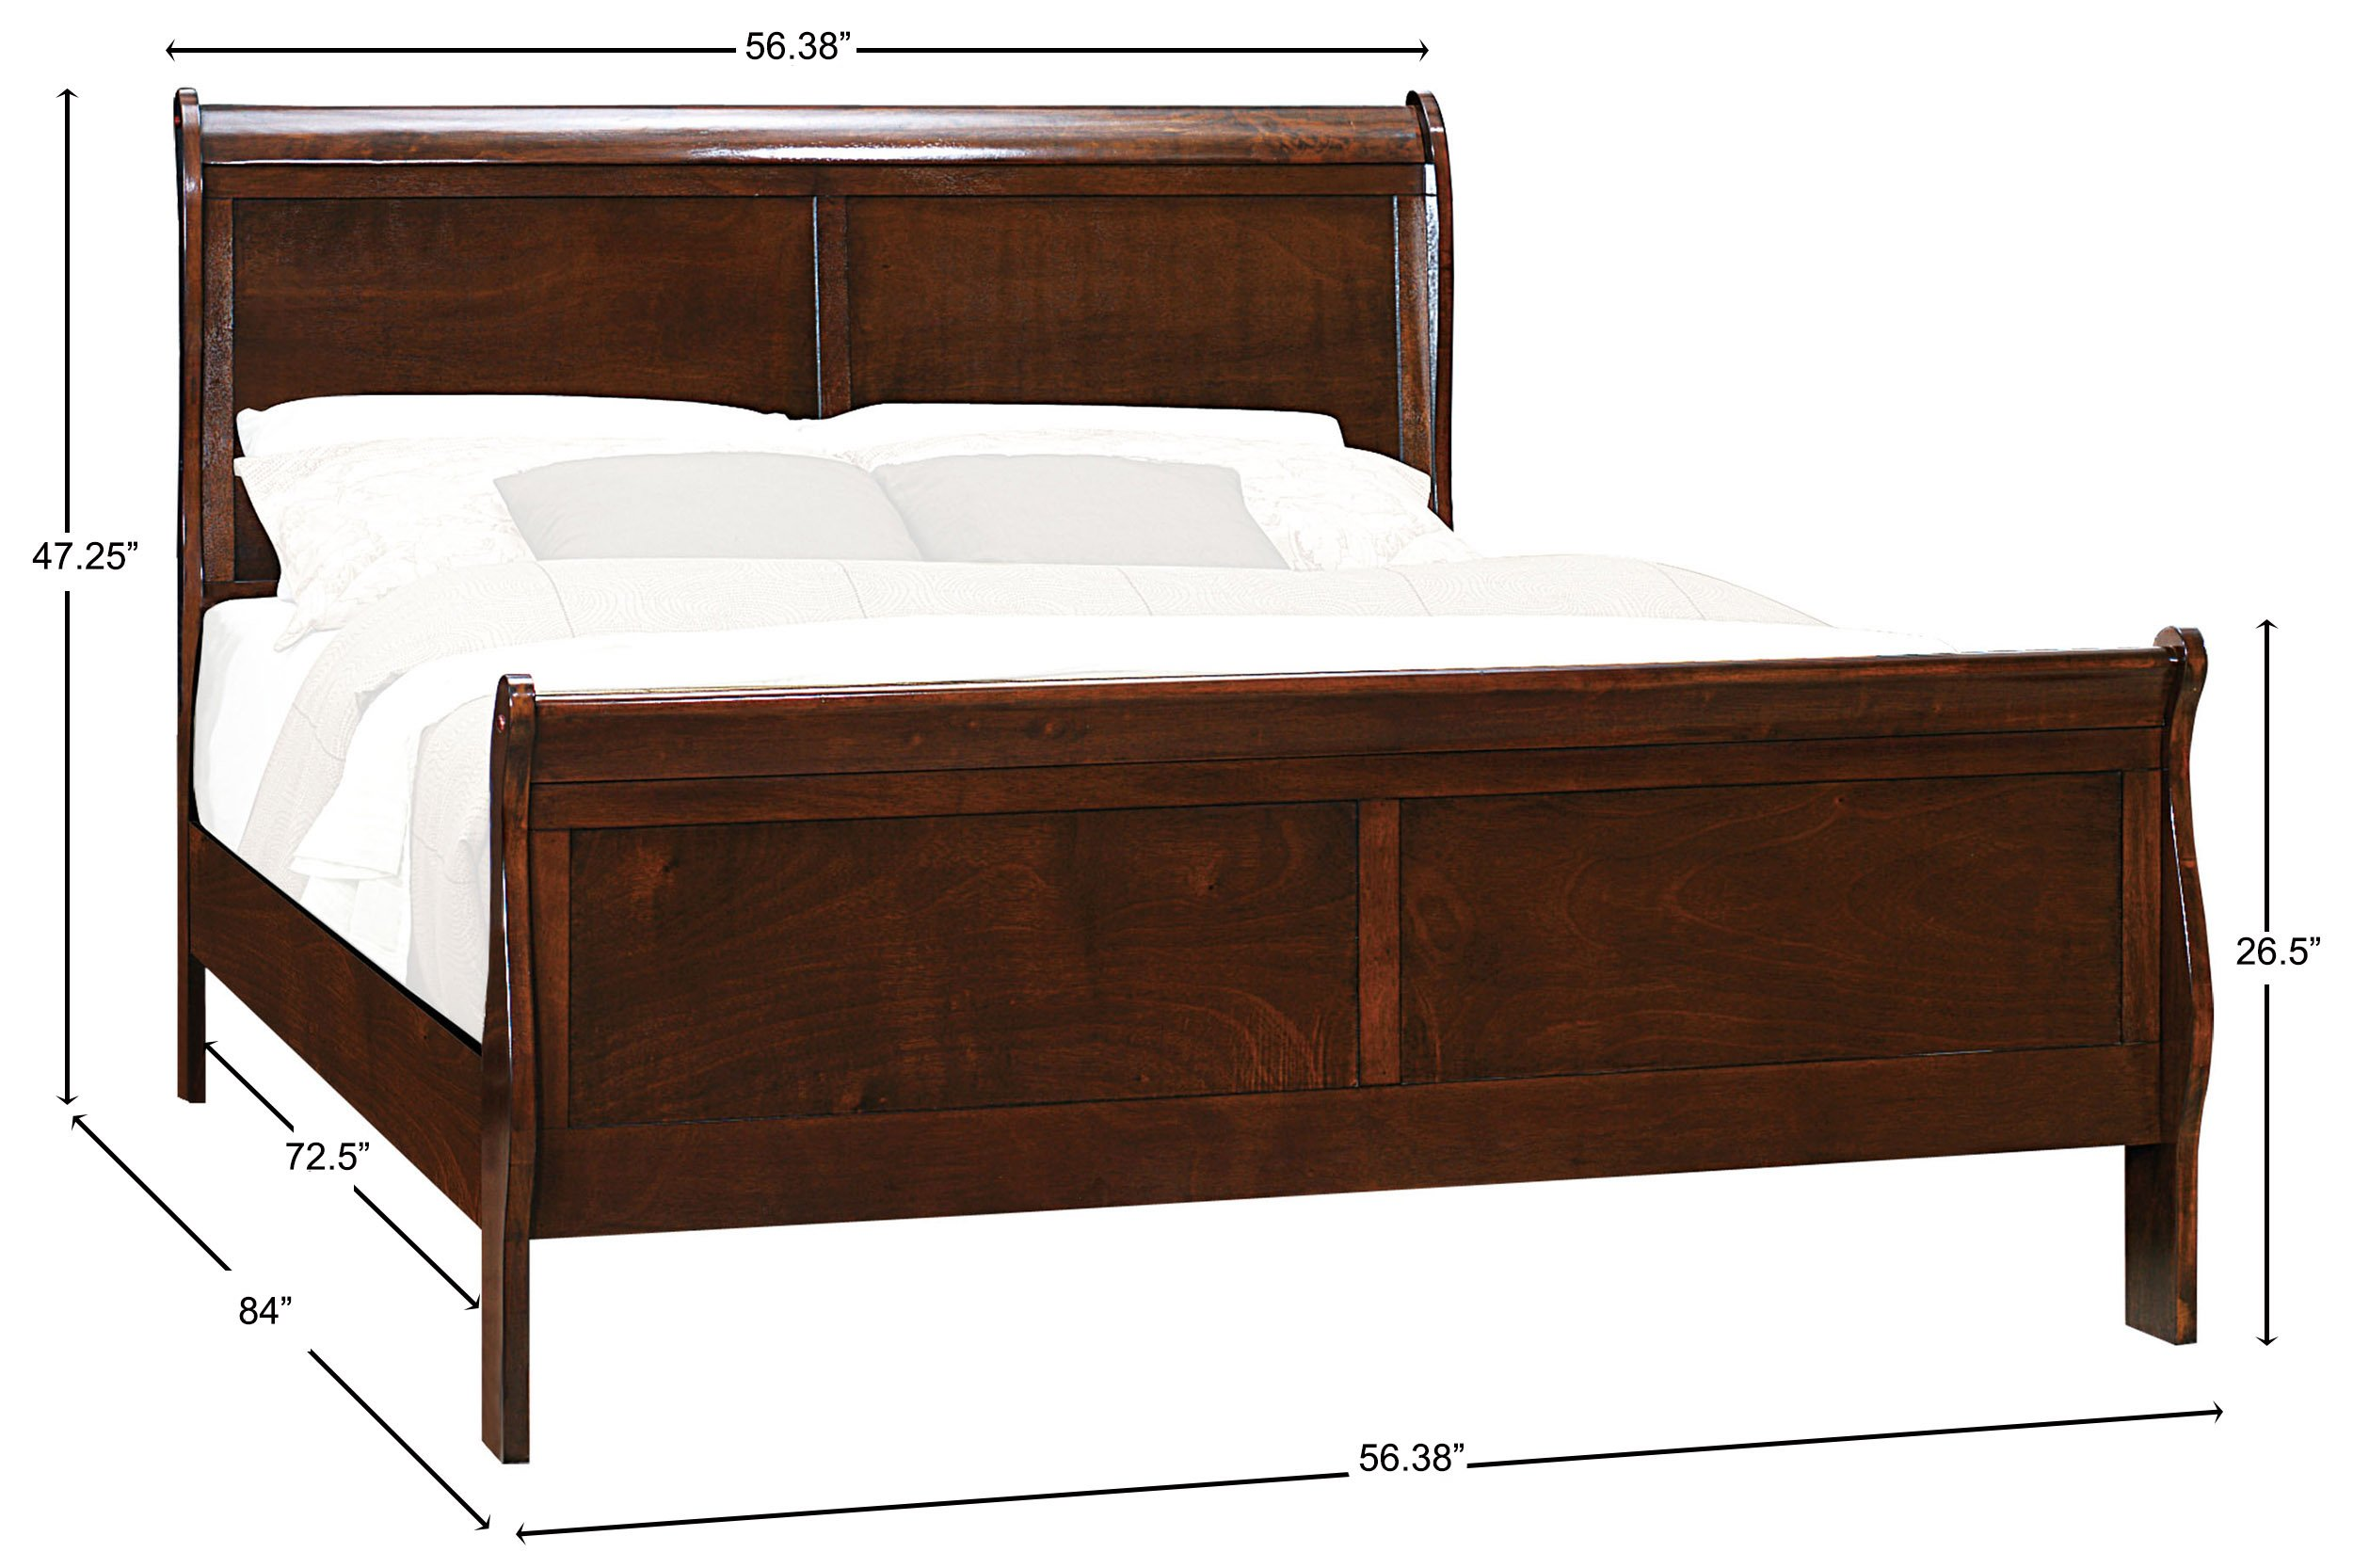 Homelegance Mayville Full Sleigh Bed Frame, Cherry by Homelegance (Image #4)